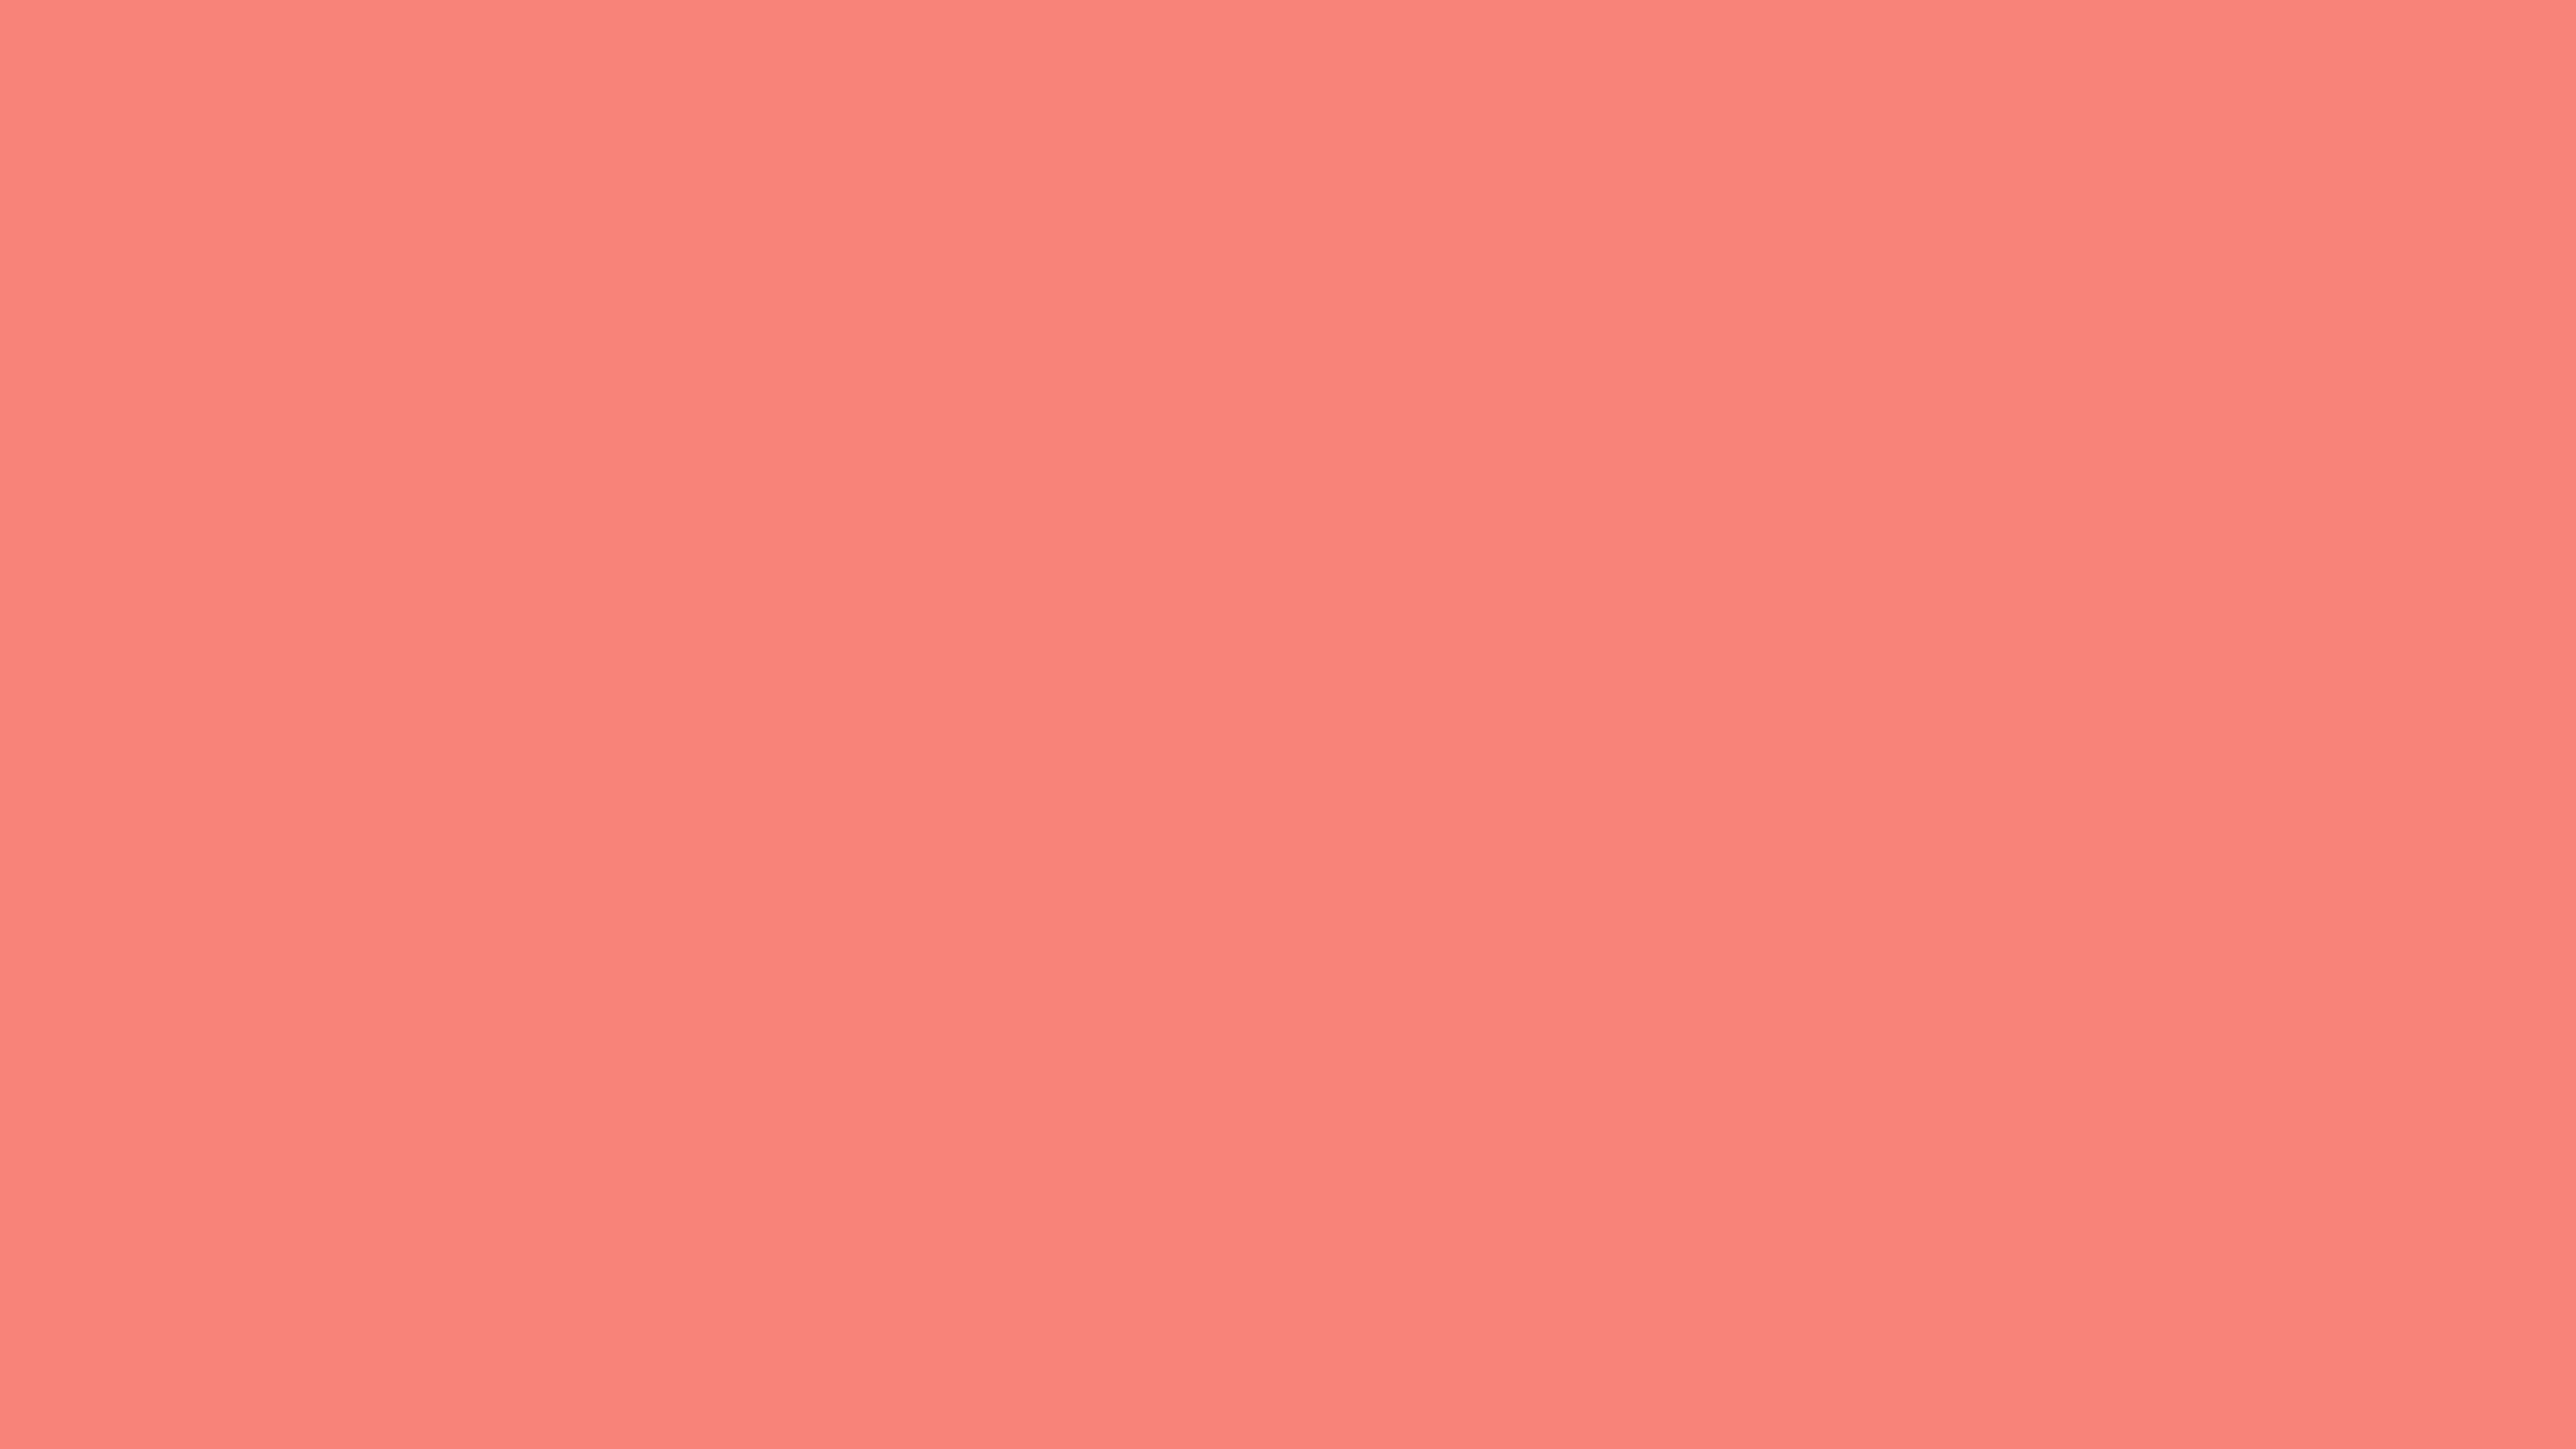 3840x2160 Tea Rose Orange Solid Color Background